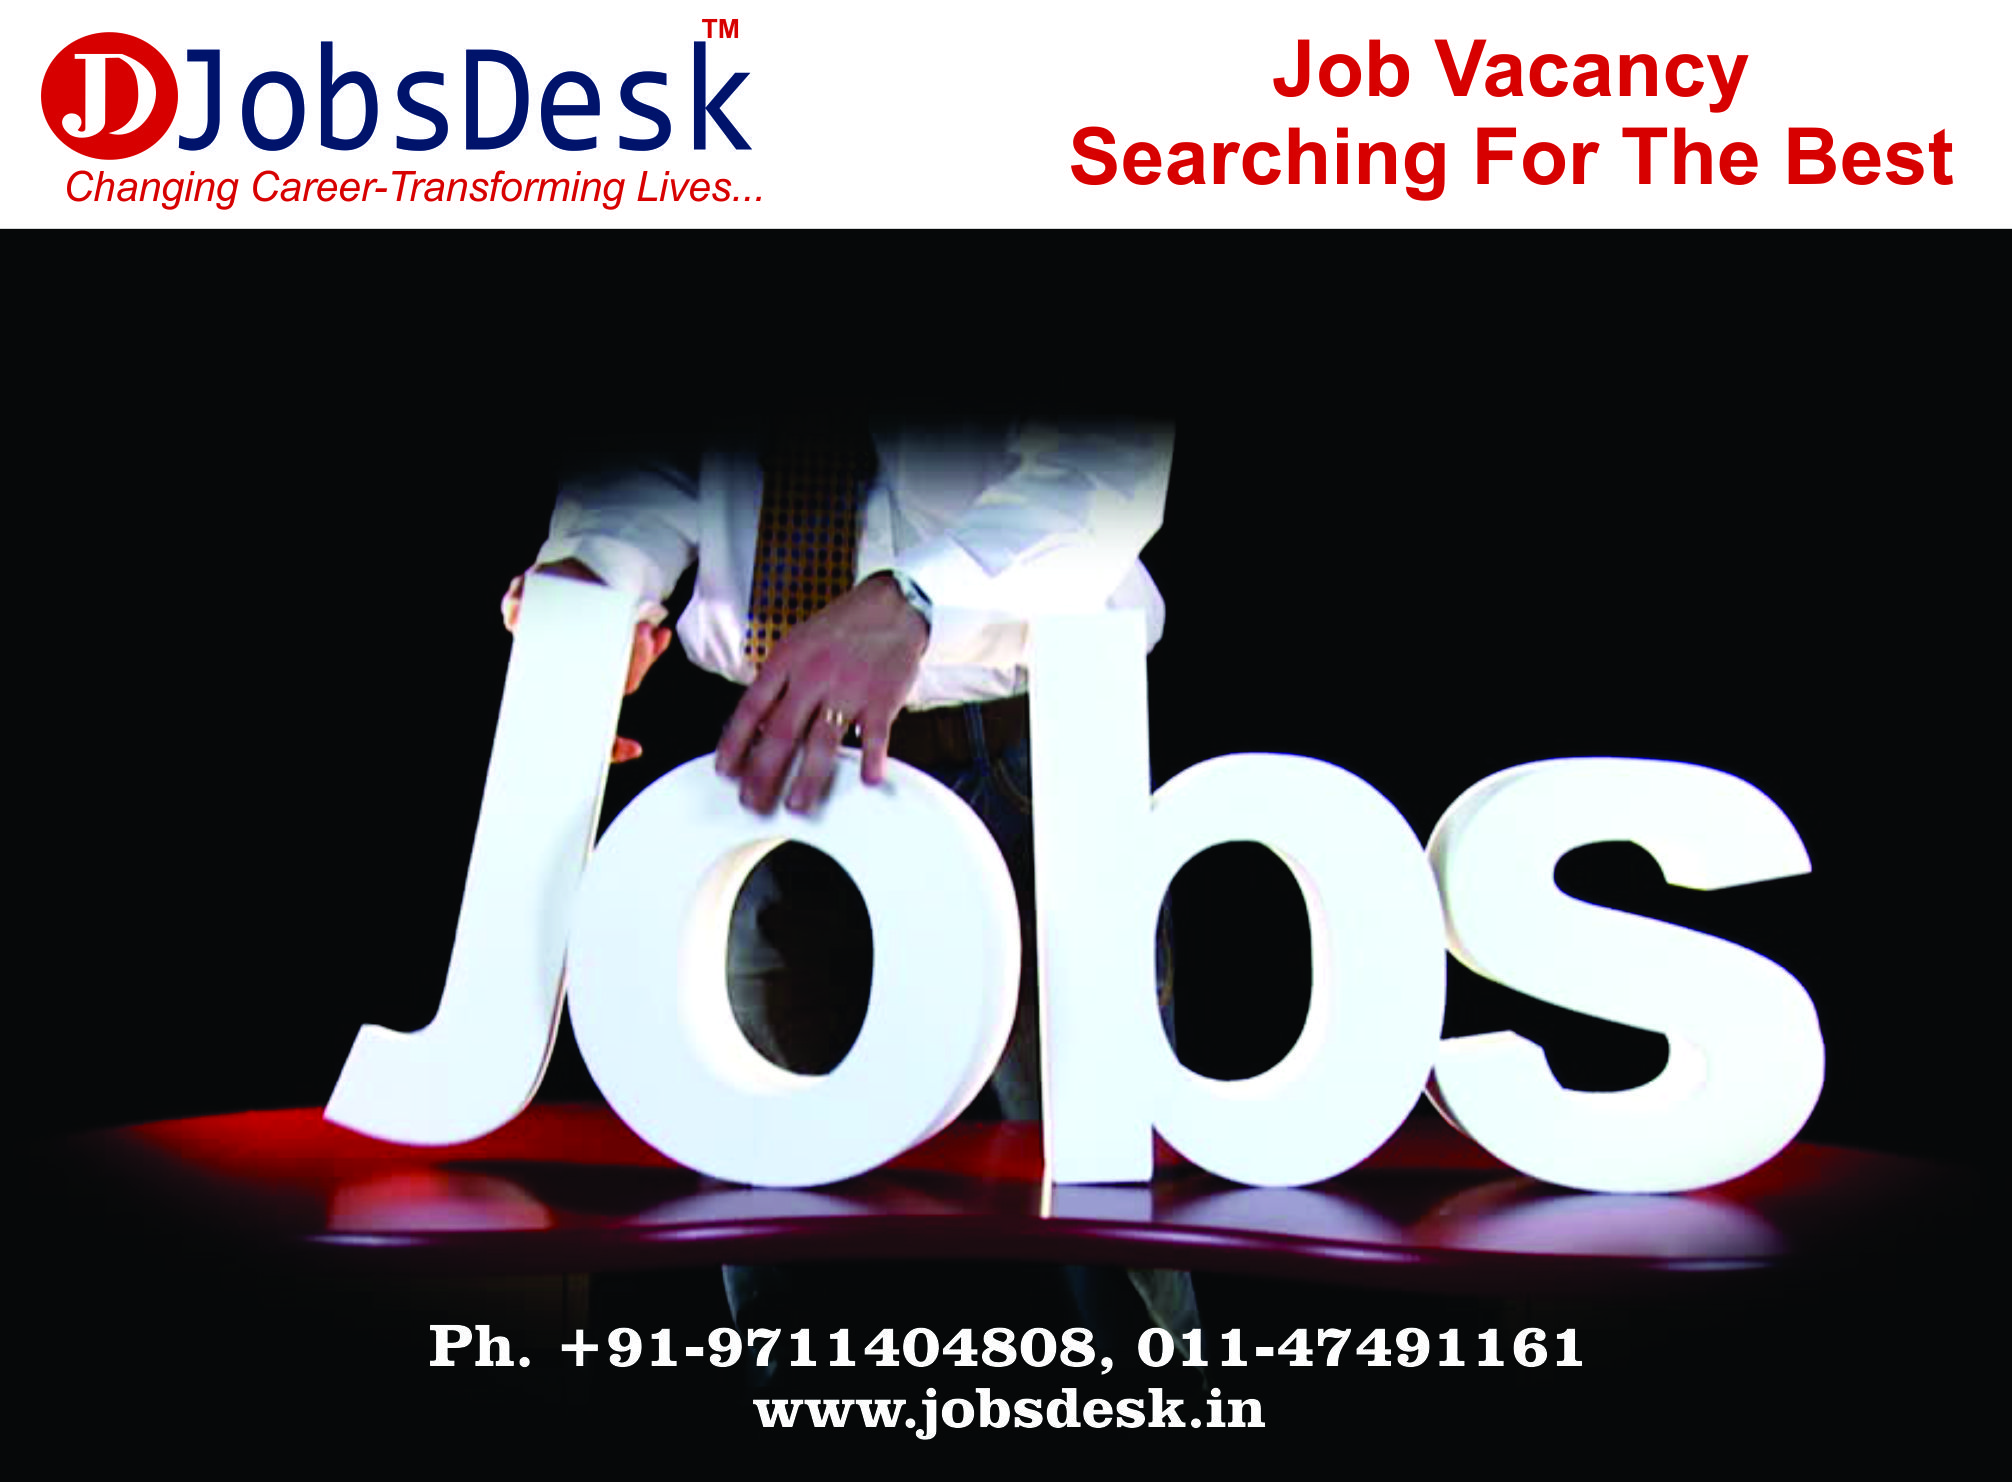 Jobs Desk is best job provider in Delhi/NCR, India. As a